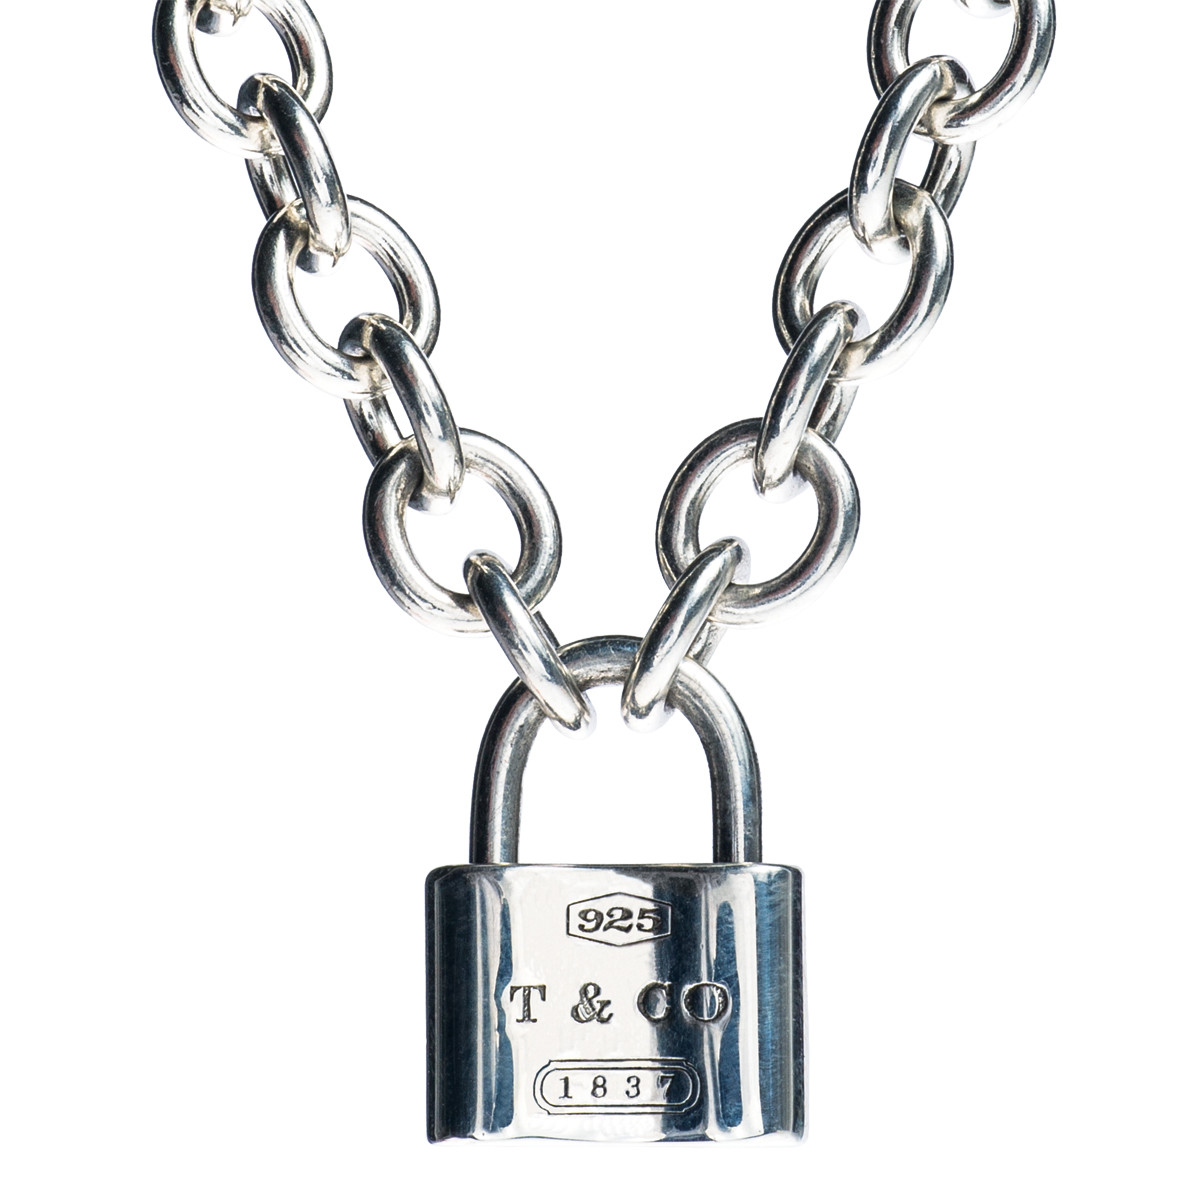 Vintage Tiffany & Co. 1837 Padlock Pendant